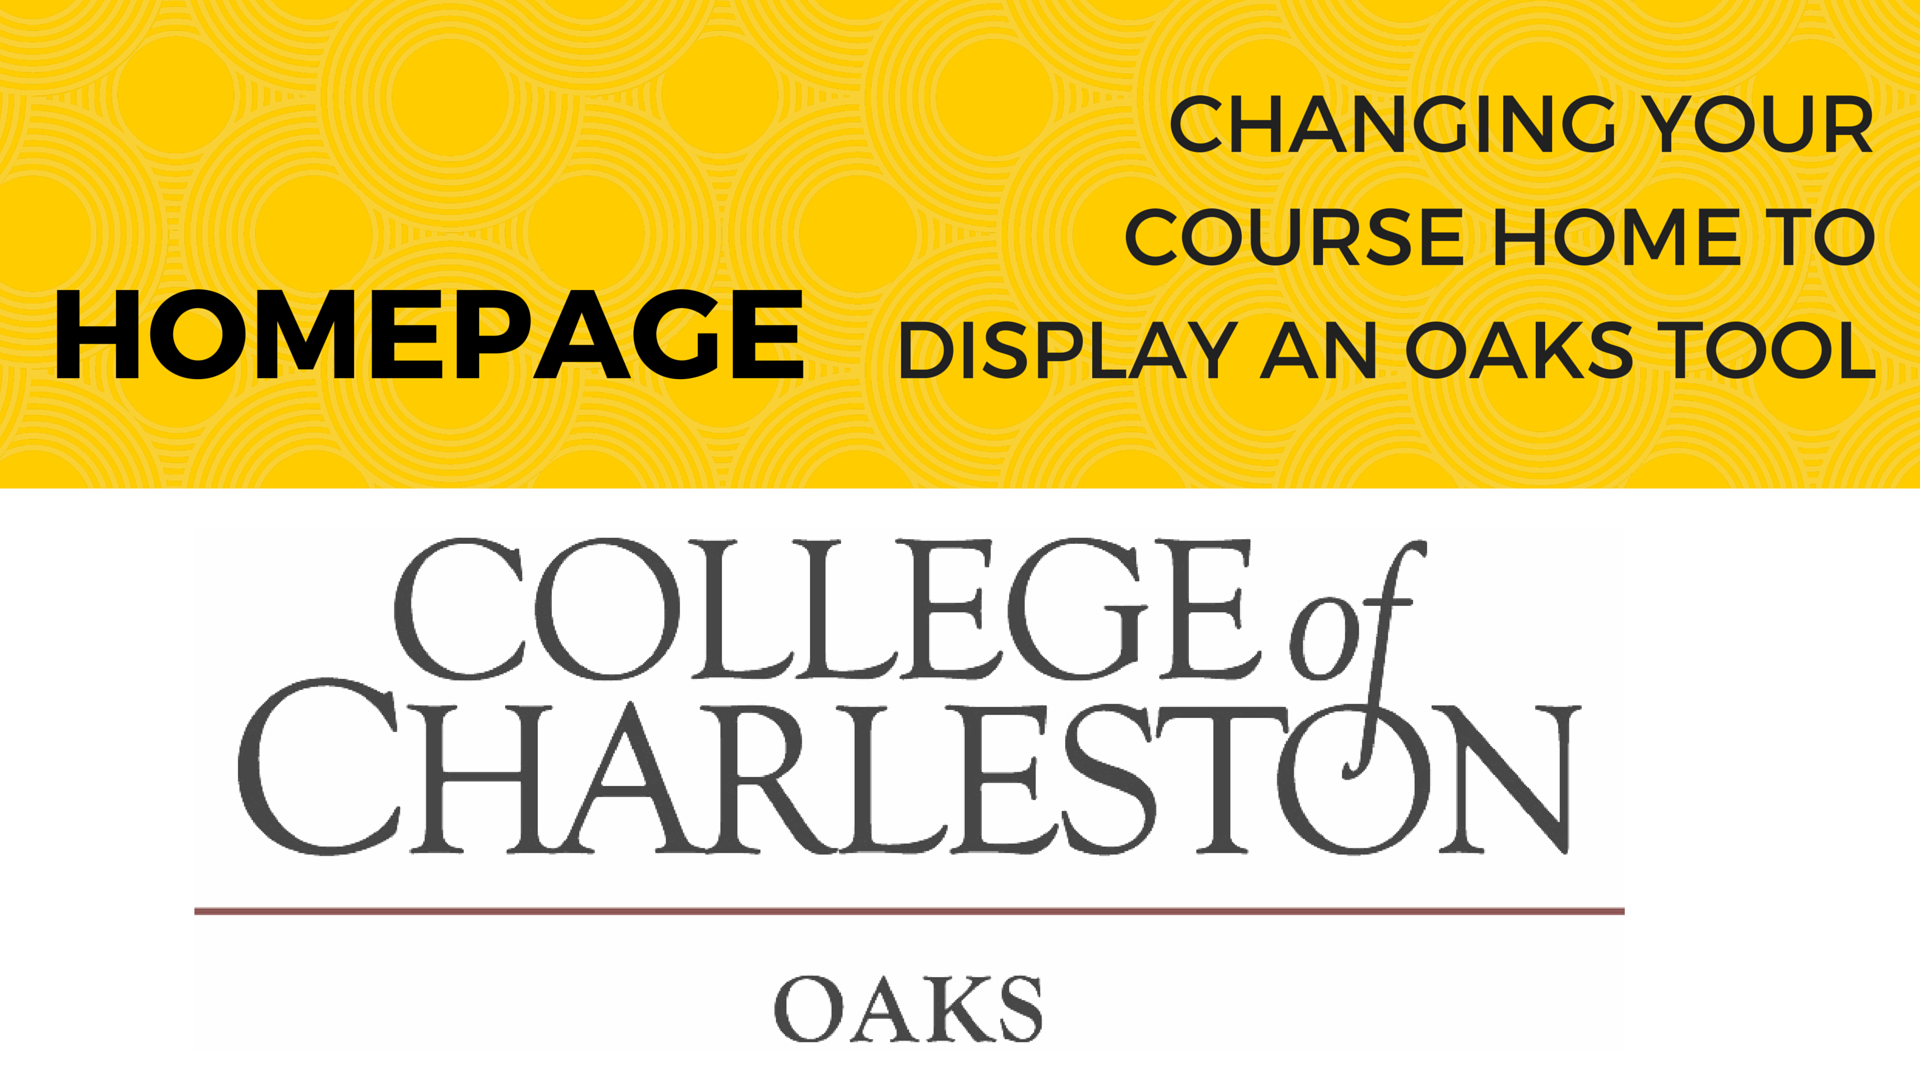 OAKS: Changing your Course Home To Display A Tool